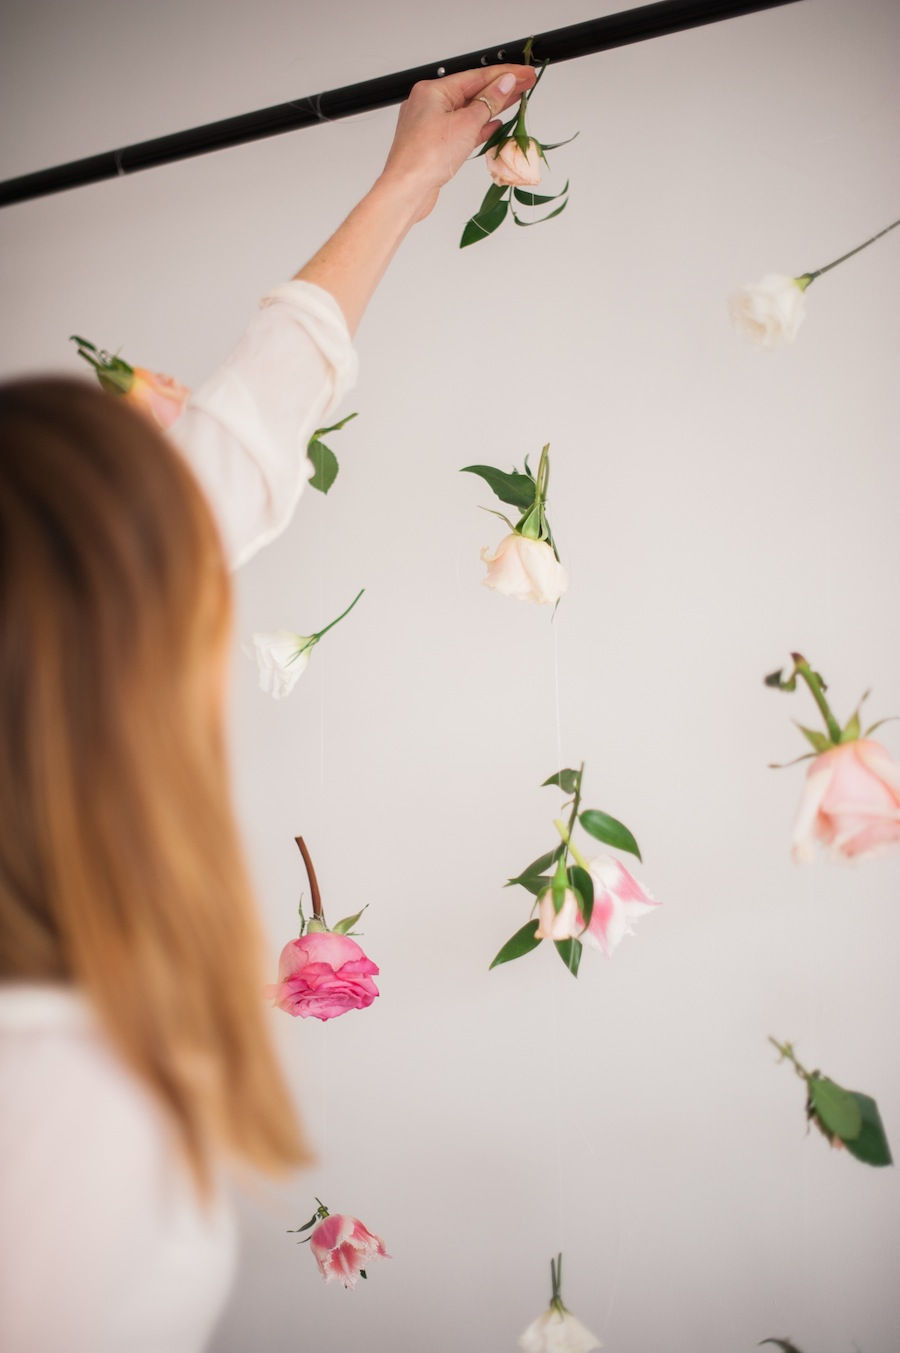 How to make a floating flower wall